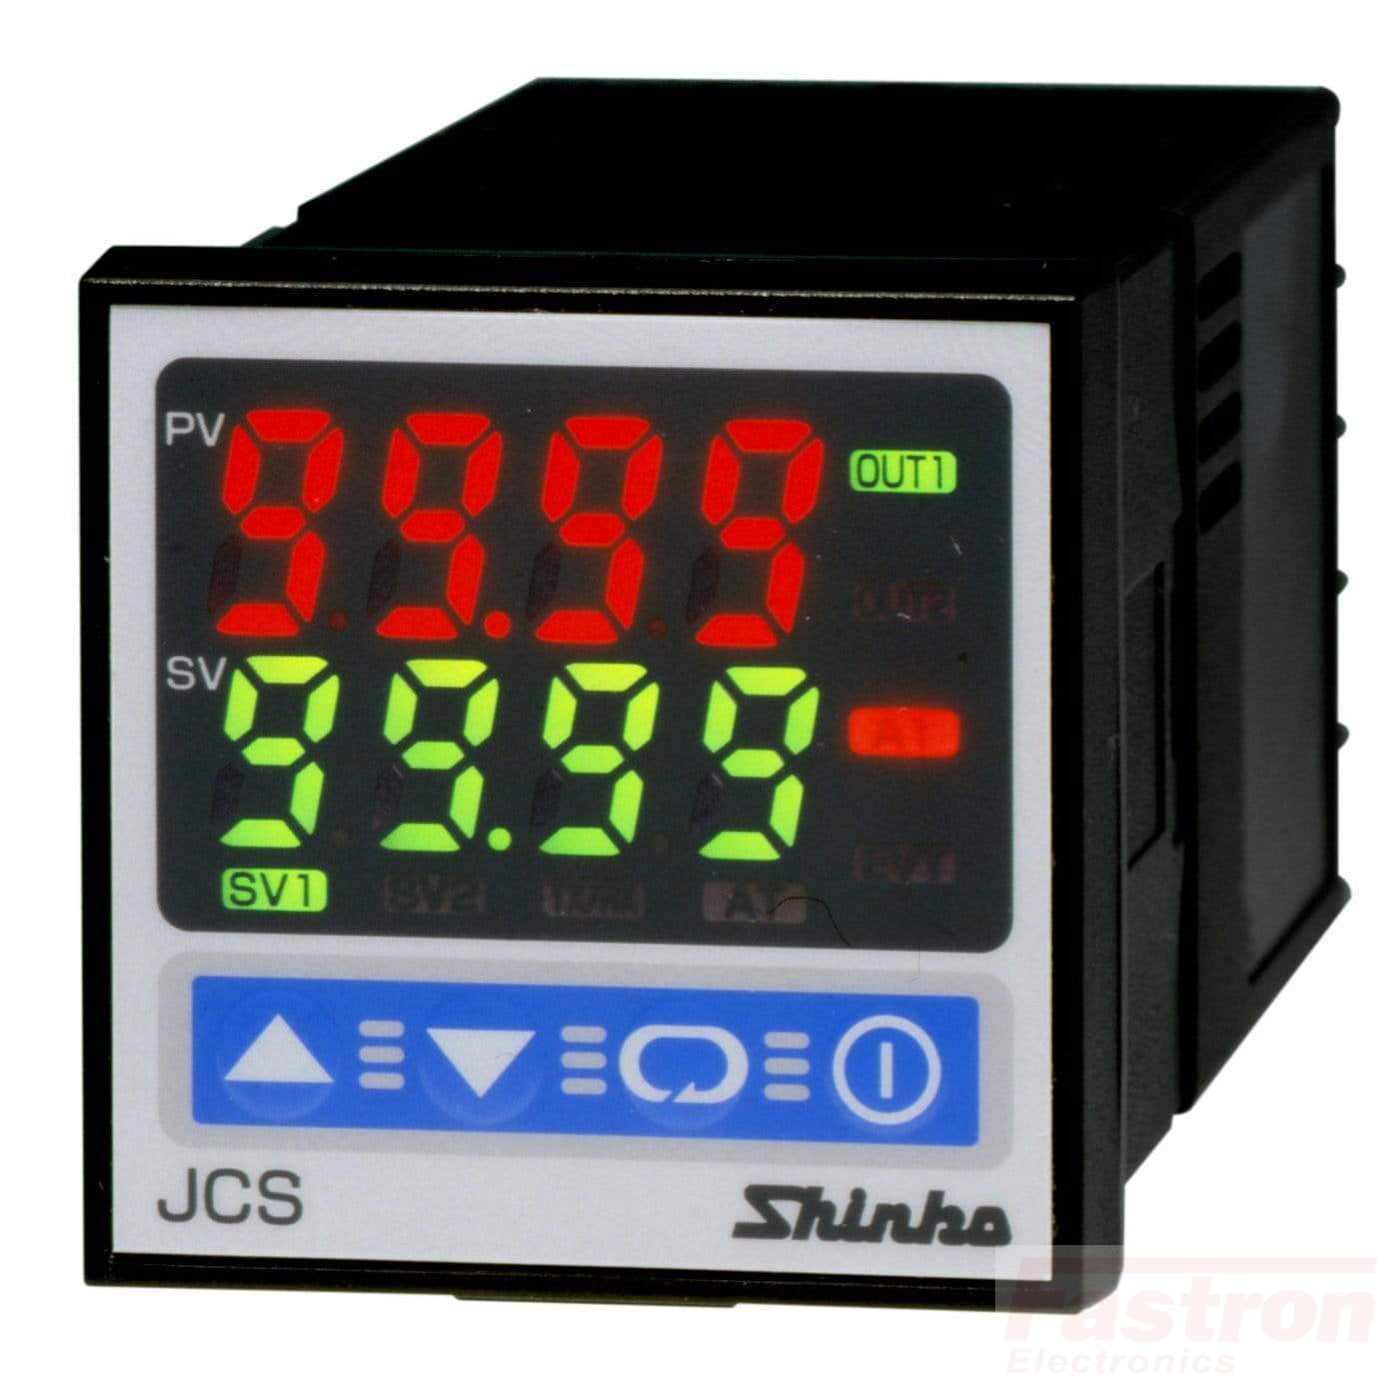 JCS33AR/MT6080,1A2C5 LIMIT C Temp Limit Controller, 48x48mm, 24VAC/DC,Relay output, 2nd Alarm output, RS485 Comms